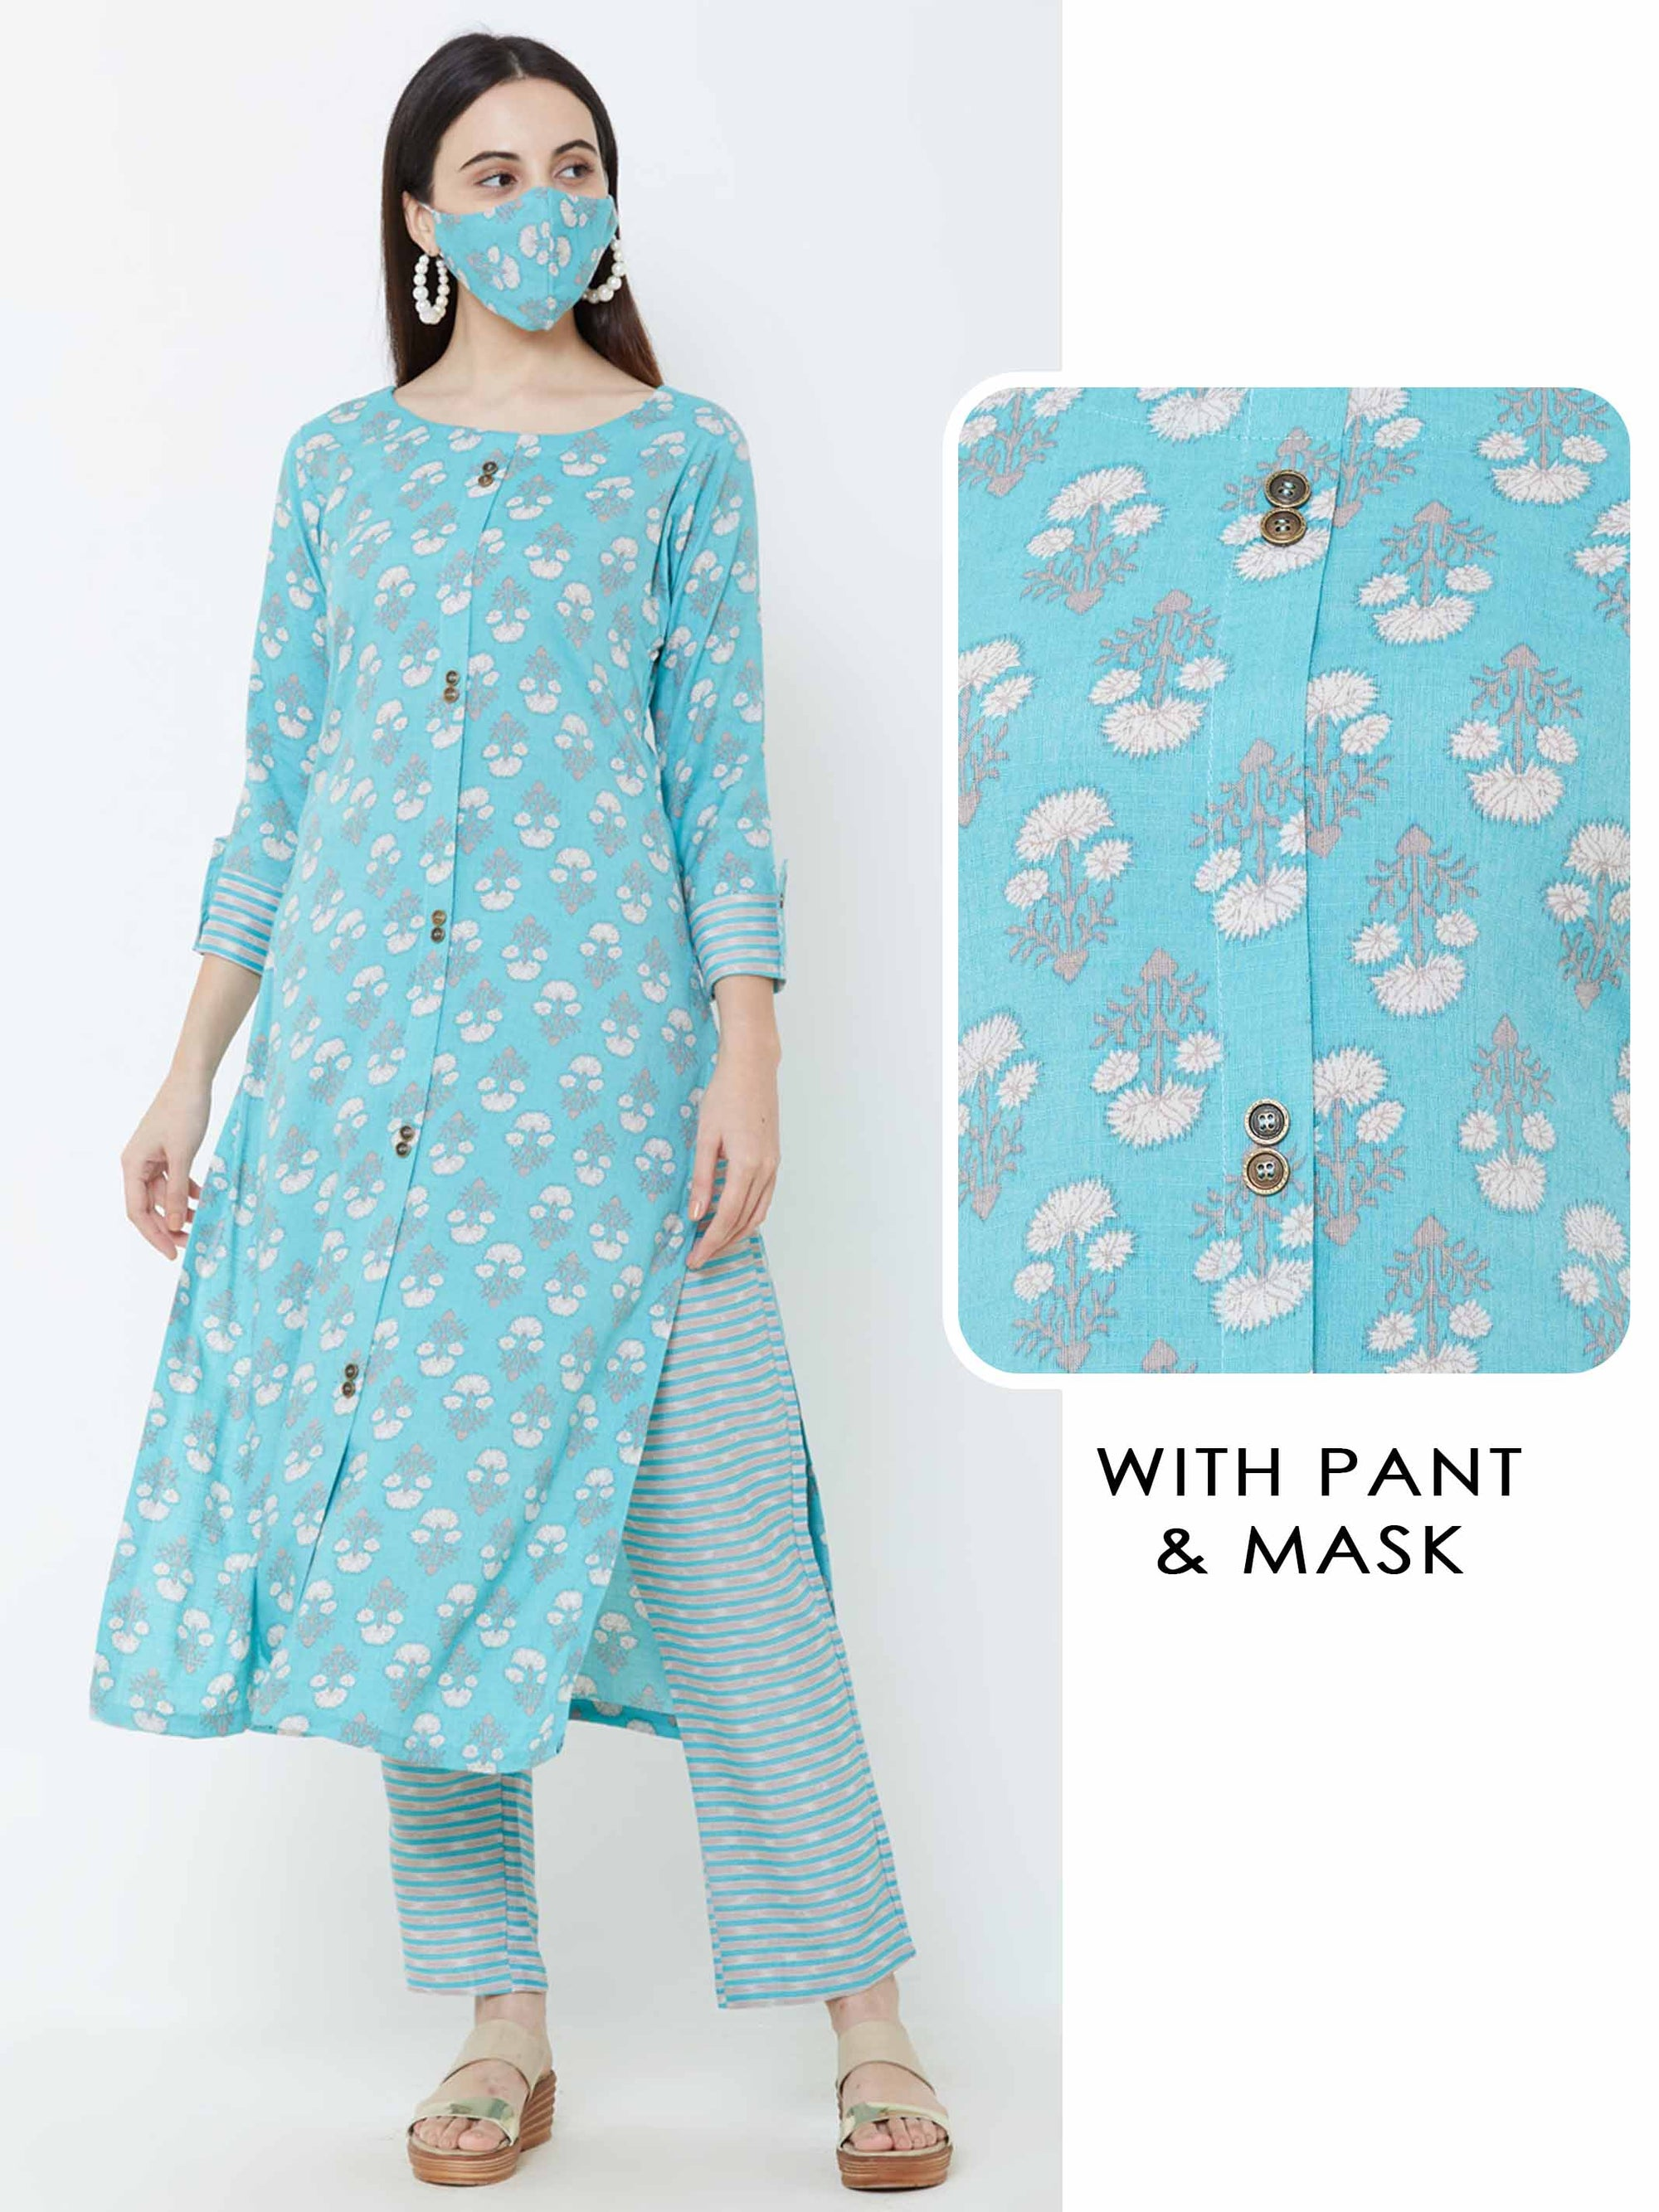 Floral printed Kurta & Horizontal striped Pant with Matching mask – Aqua Blue